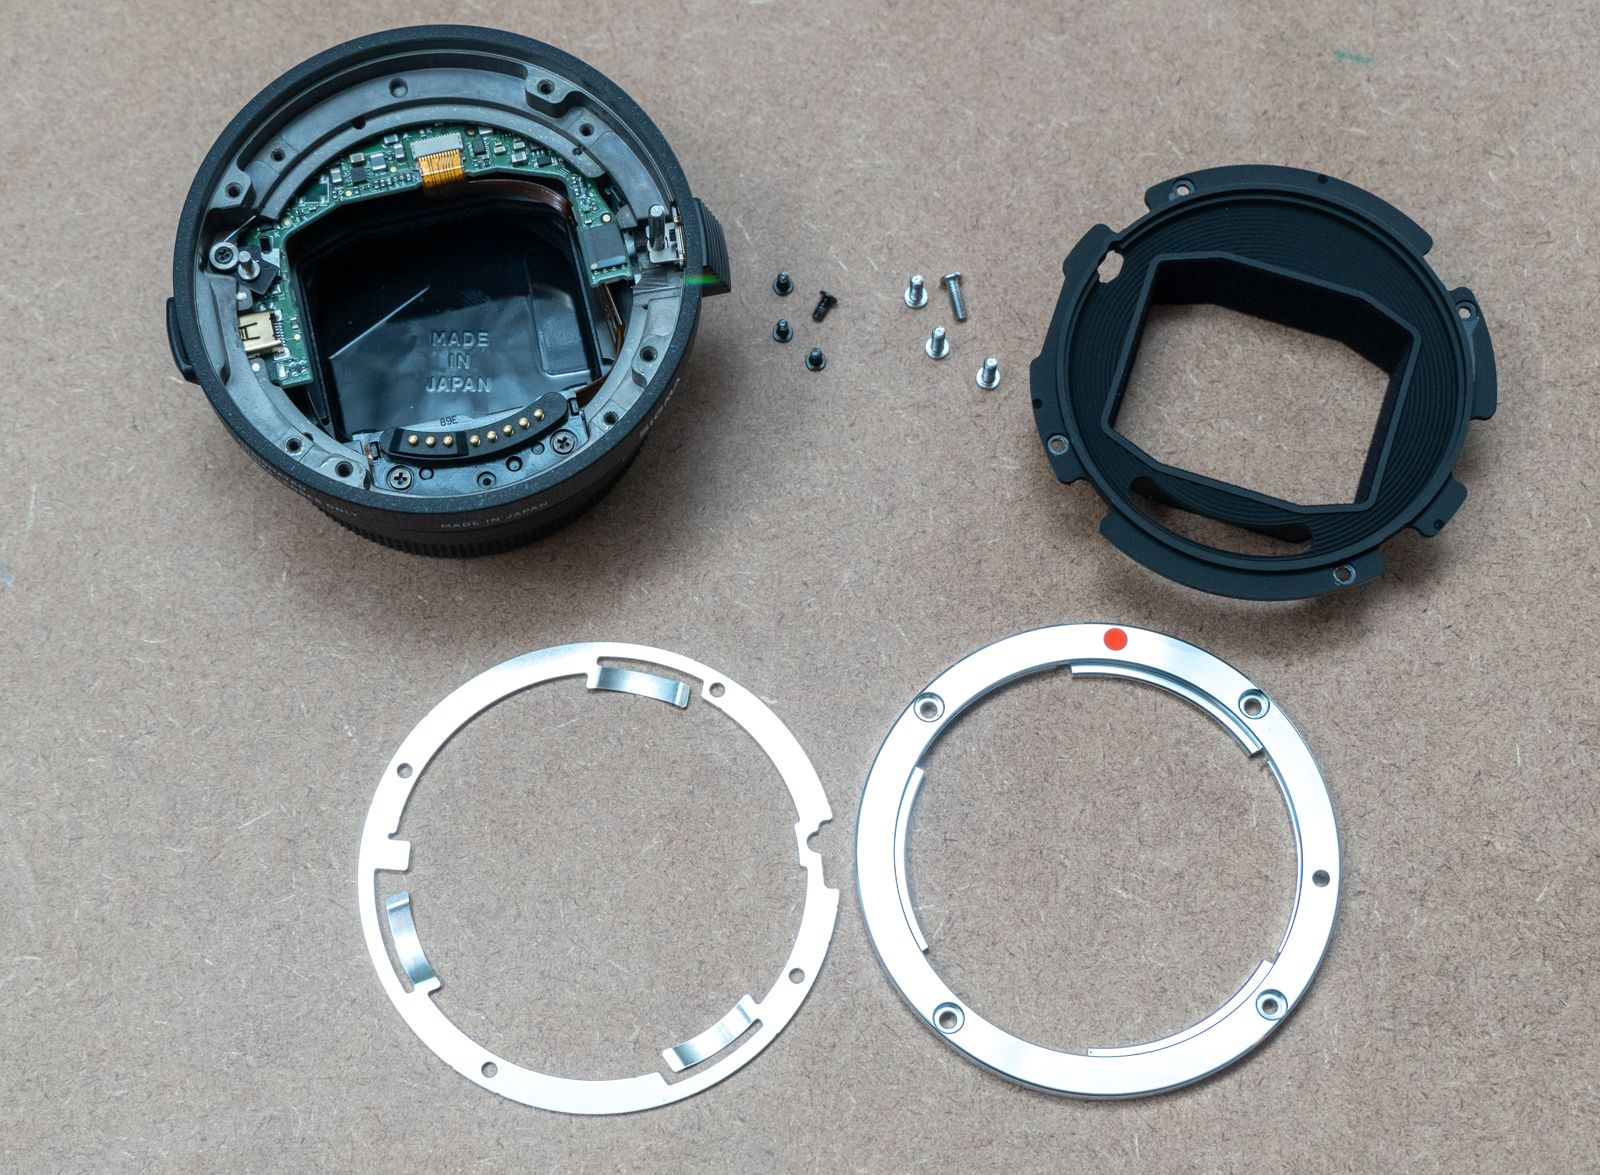 Sigma MC-11 with ring and inner shroud removed